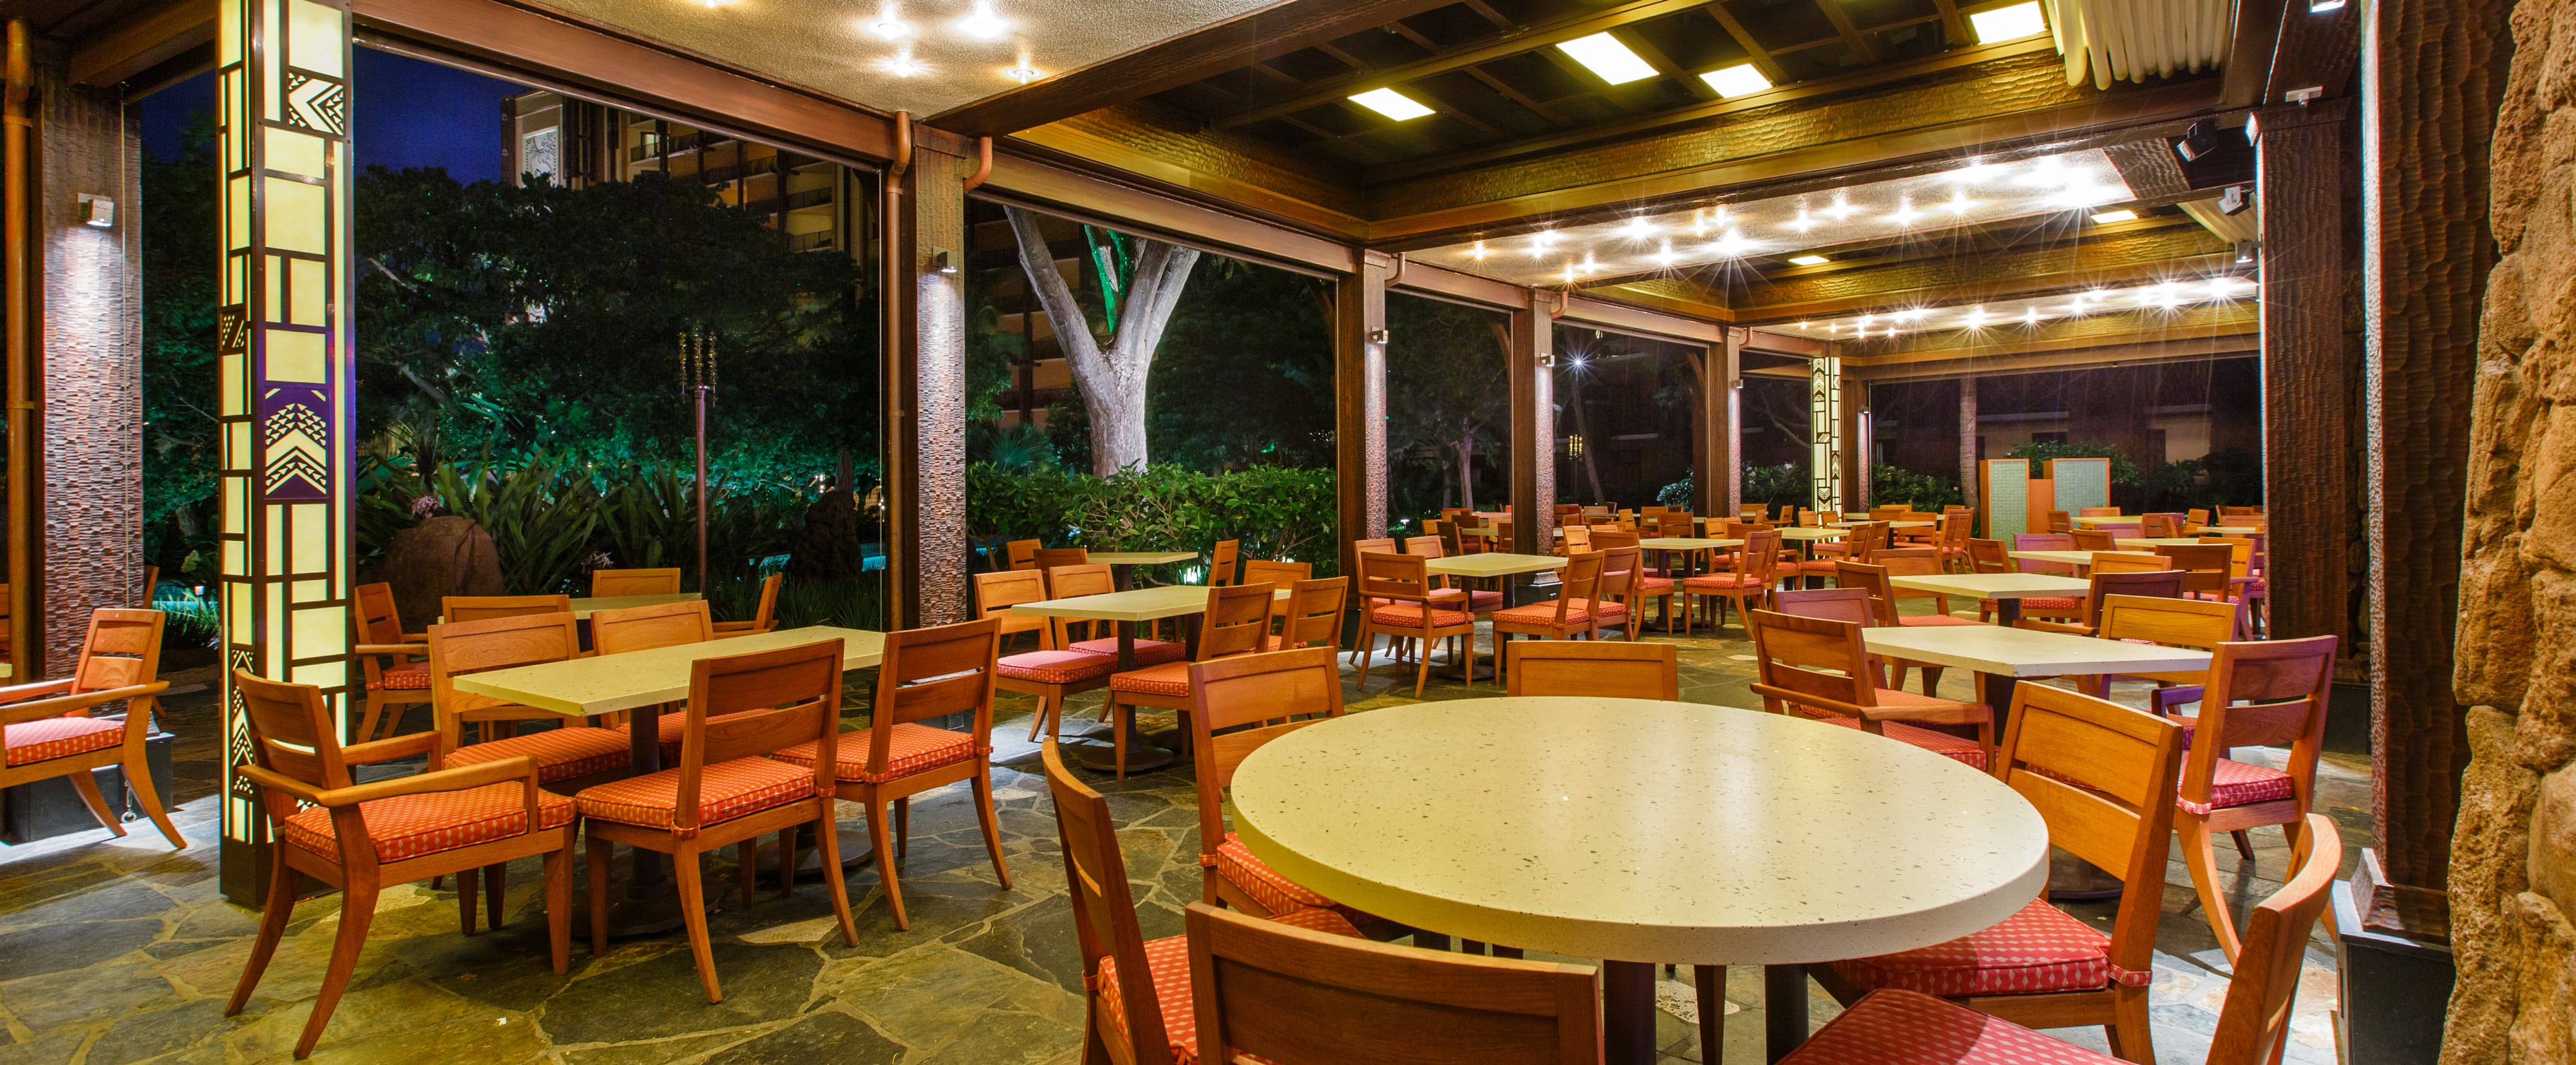 Tables On A Large Covered Patio Lit Up At Night